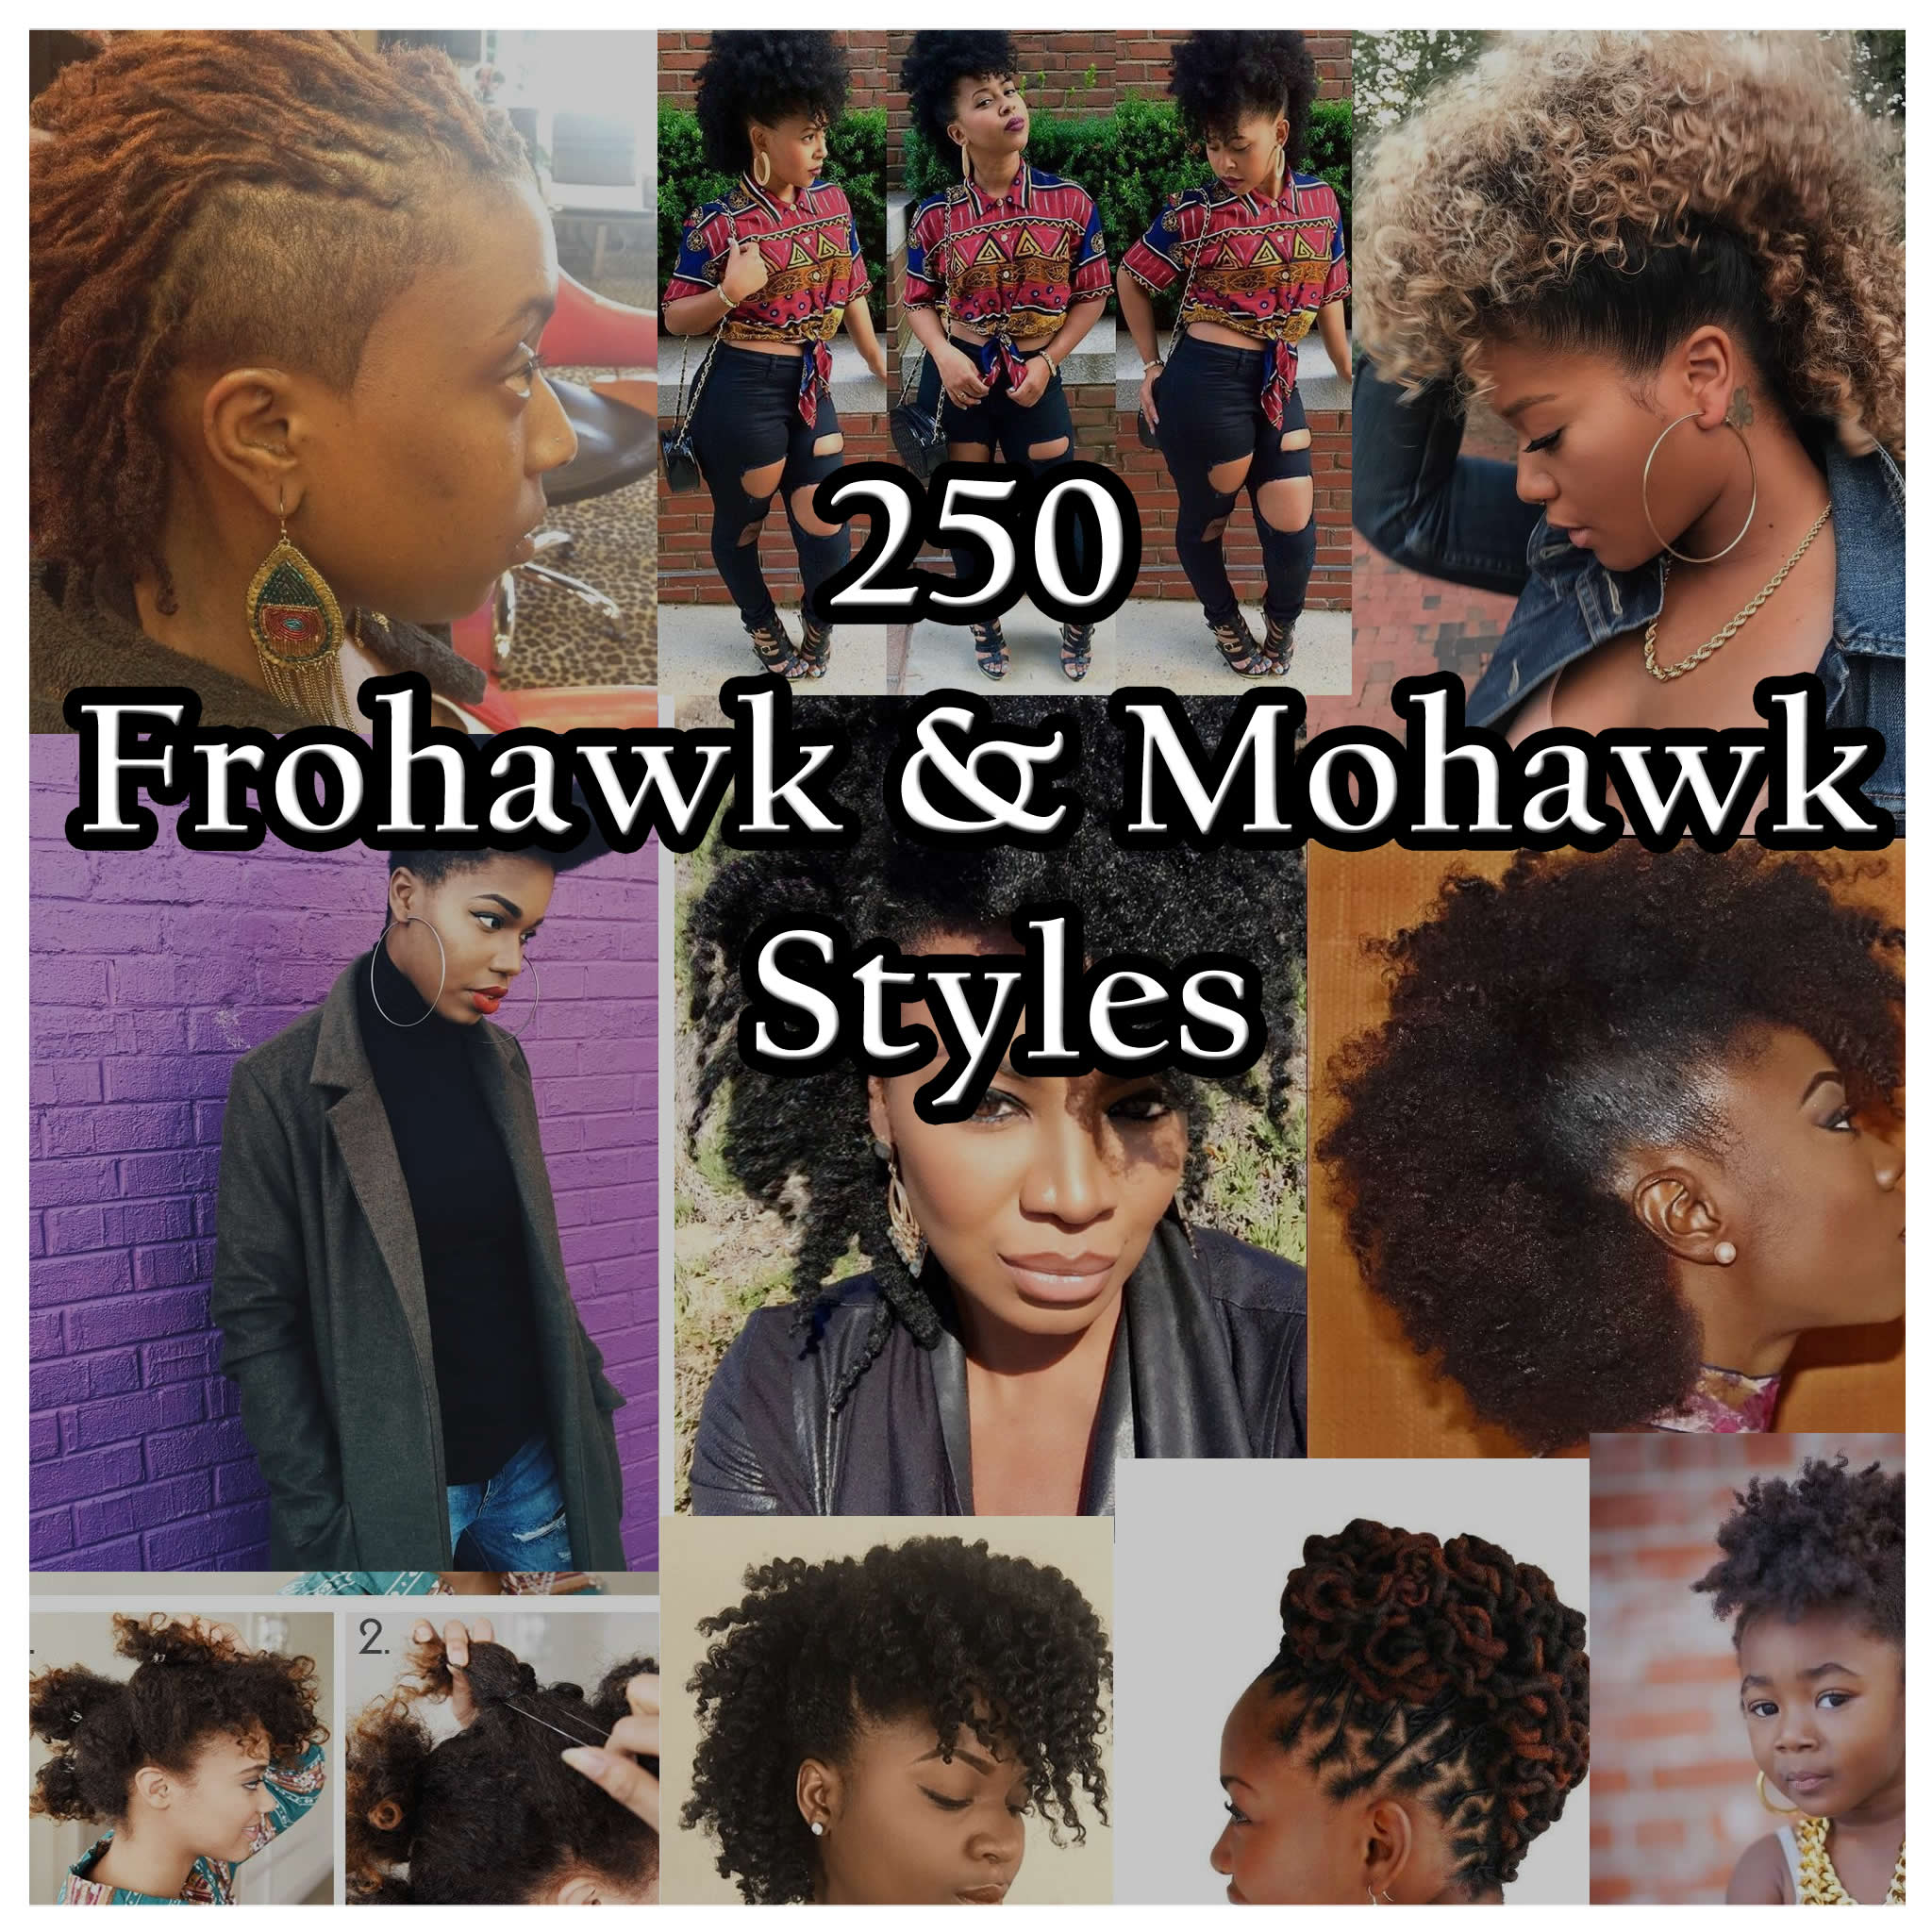 Frohawk & Mohawk Hairstyle 250 Photos Here it is !